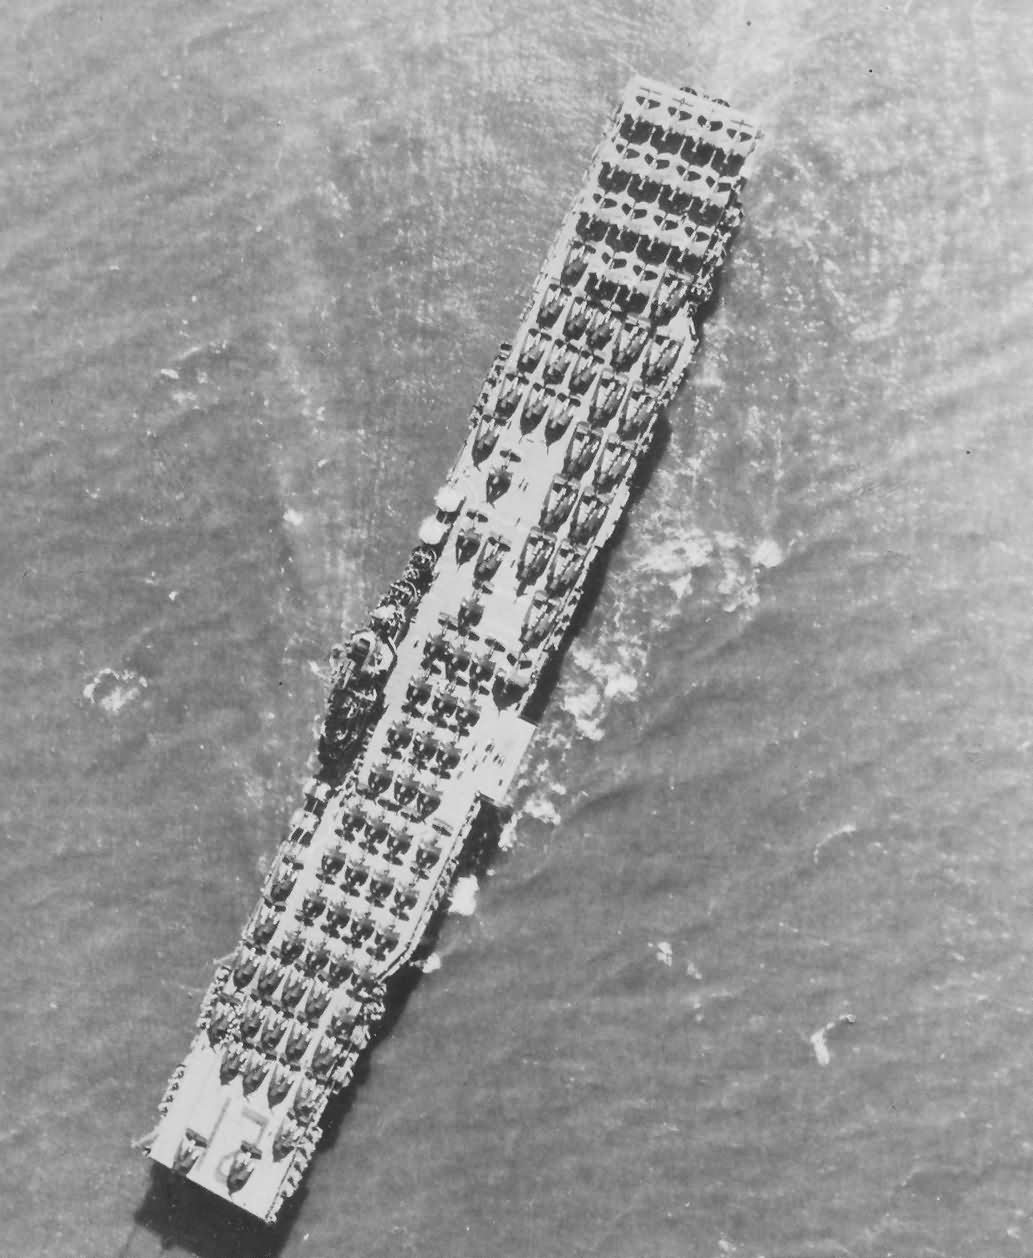 USS Boxer CV-21 carrier deck filled with airplanes